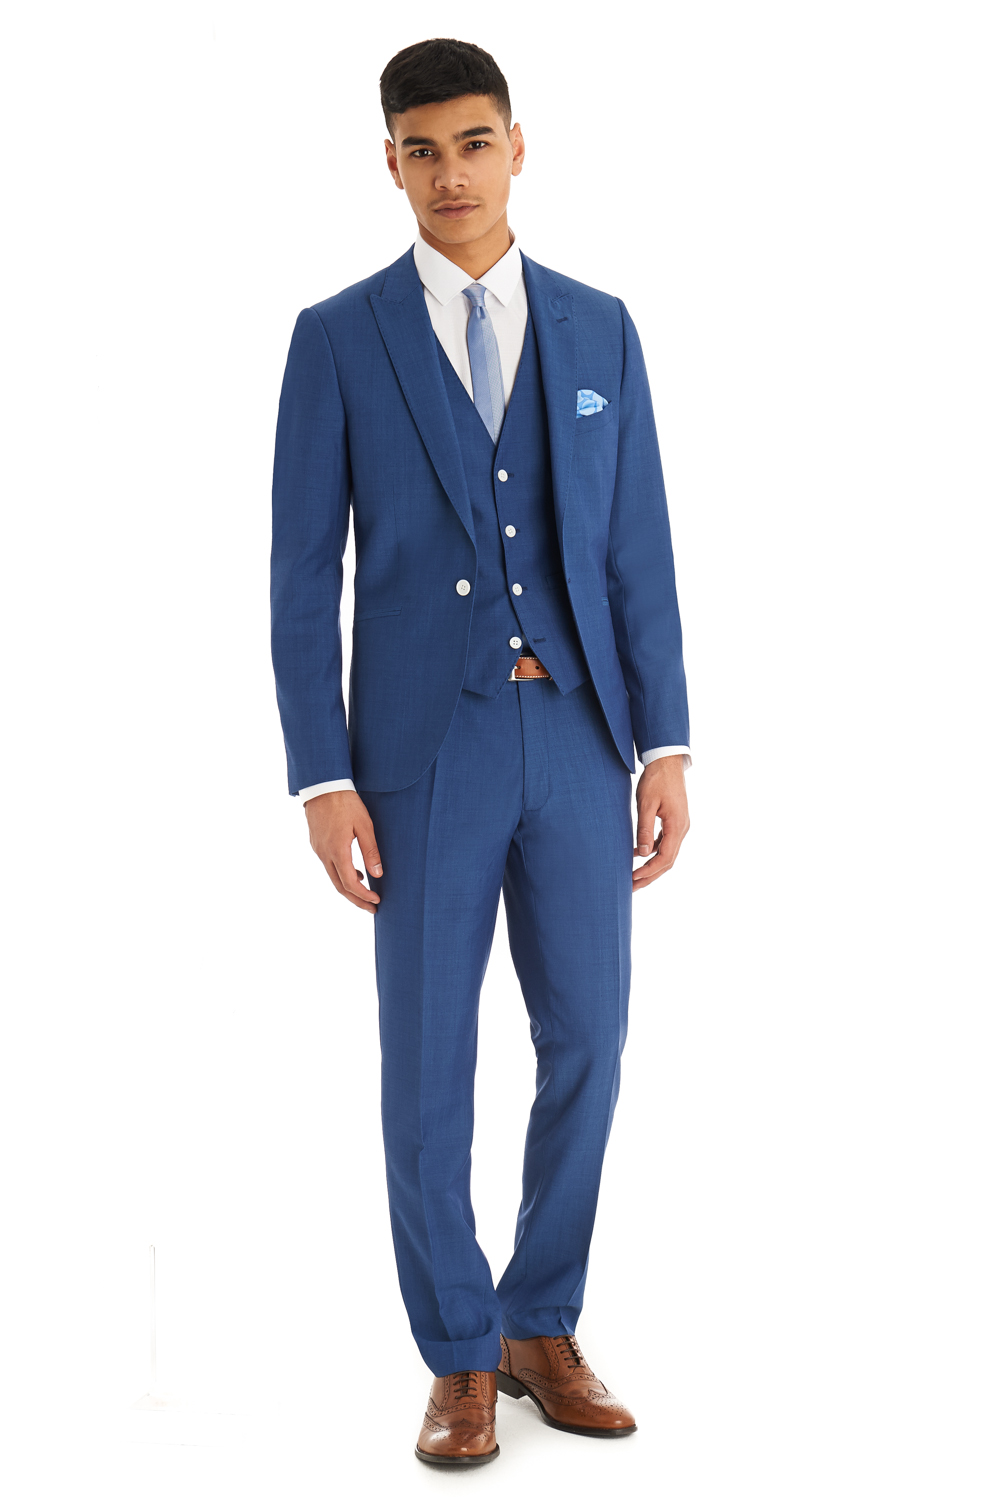 Braveman Men's Slim-Fit Suits (3-Piece) Make a fashion statement at business functions, weddings, and other formal events with these 3-piece suits in a modern, slim-fit cut Groupon/5().